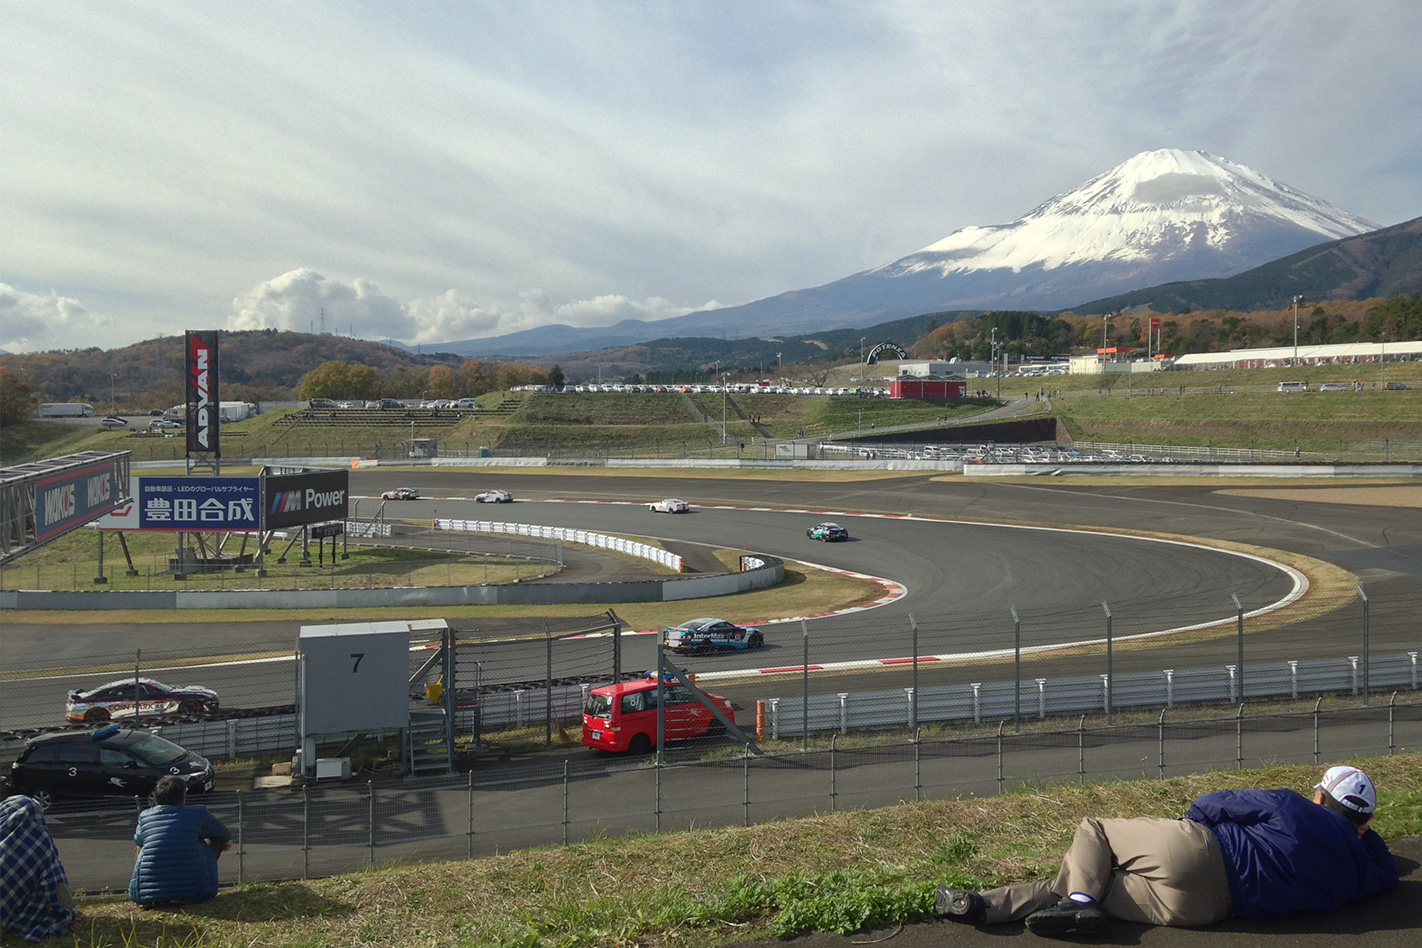 Nismo festival R35 GT-Rs on track